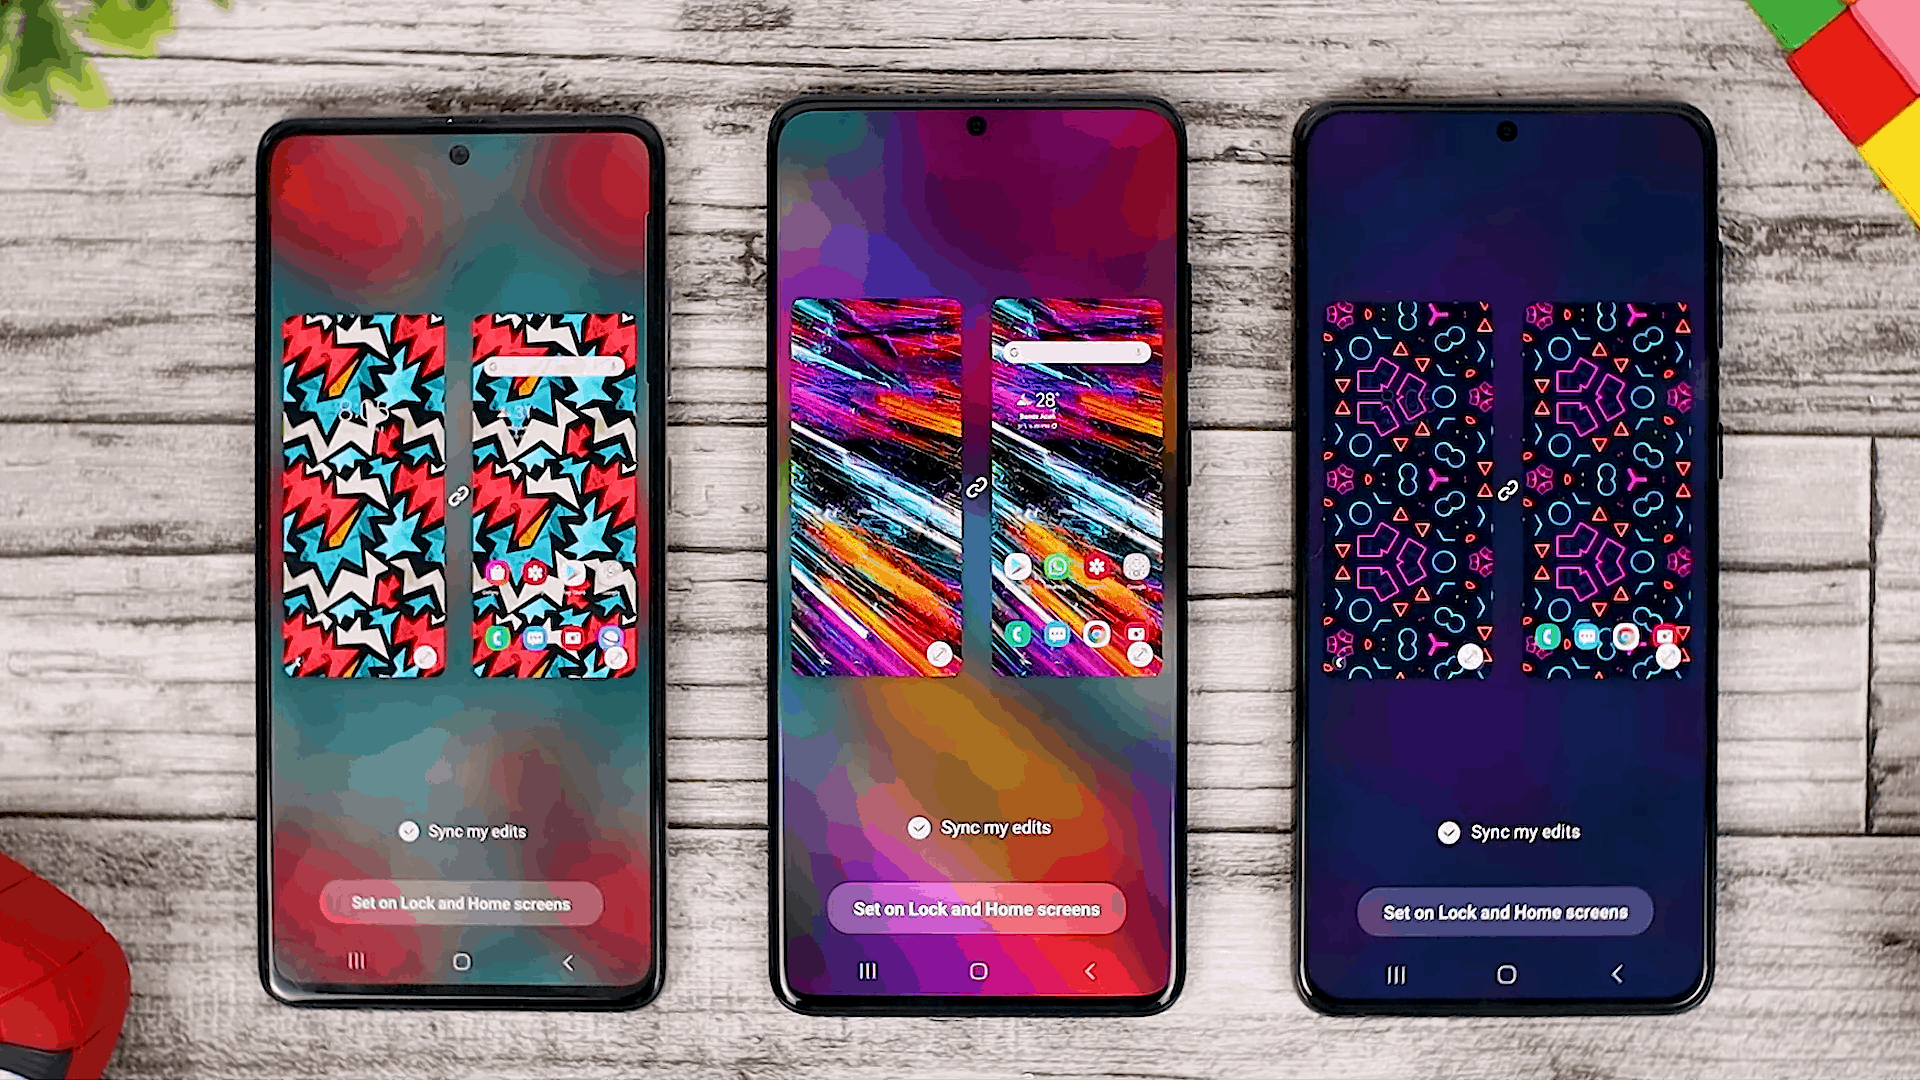 Wallpaper Interactive Preview - Fitur One UI 3.0 di Galaxy A51 dan Perbandingannya dengan Galaxy S20+ dan One UI 3.1 di Galaxy S21+